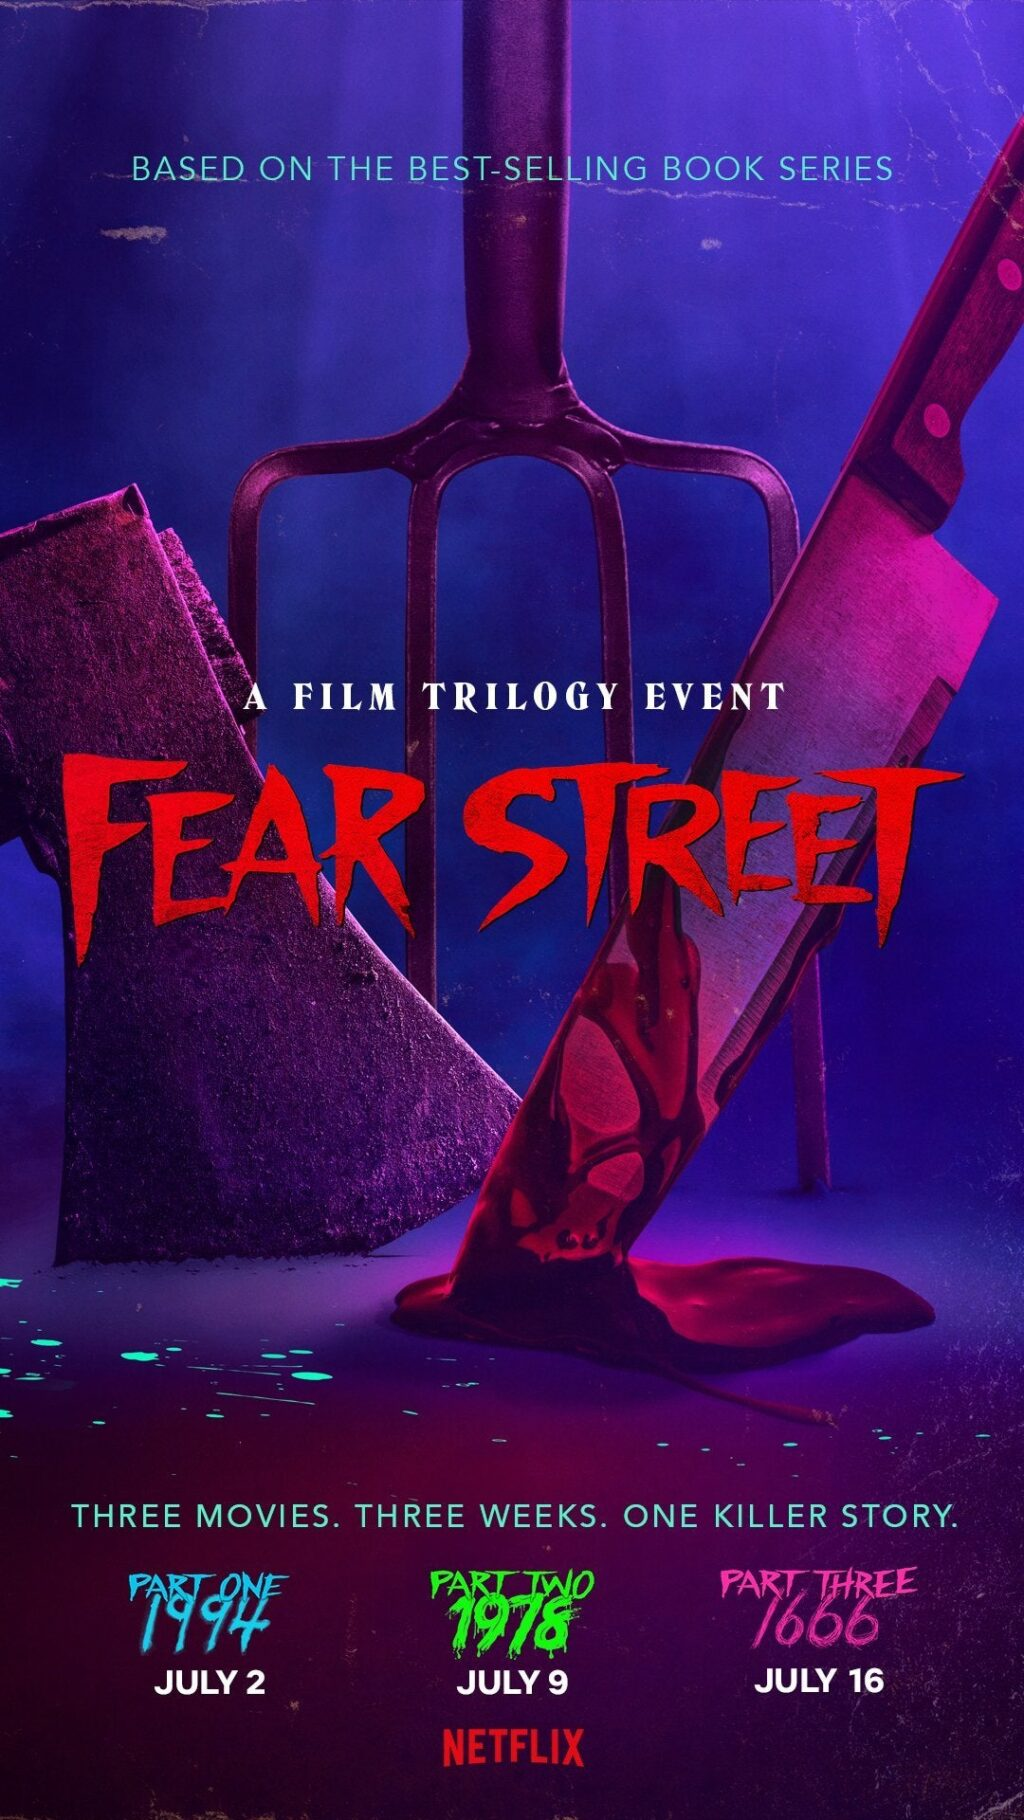 FEAR STREET Poster 1024x1820 - FEAR STREET Director Reveals the Killer Scary Horror Movies That Inspired Her Netflix Trilogy